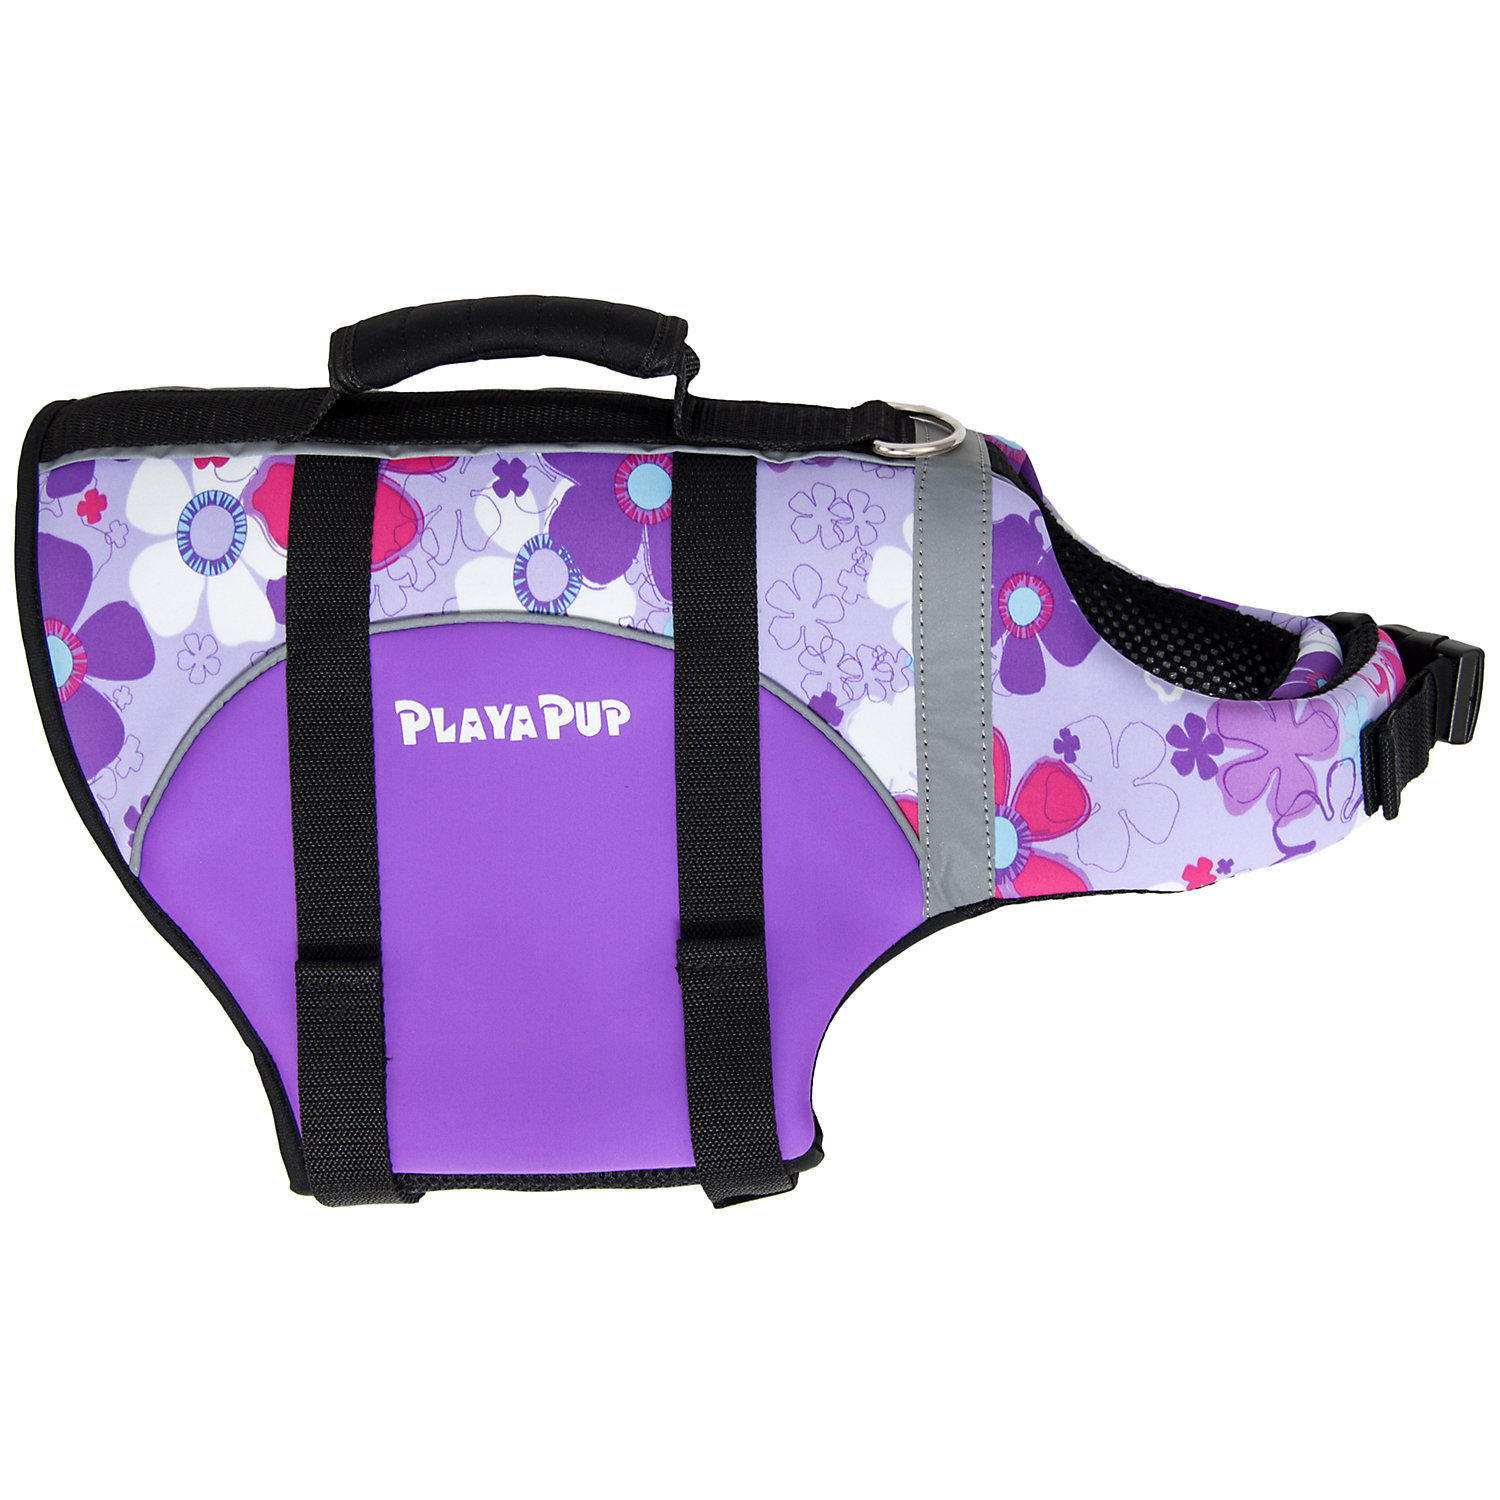 Image of Playa Pup Orchid Dog Flotation Vest